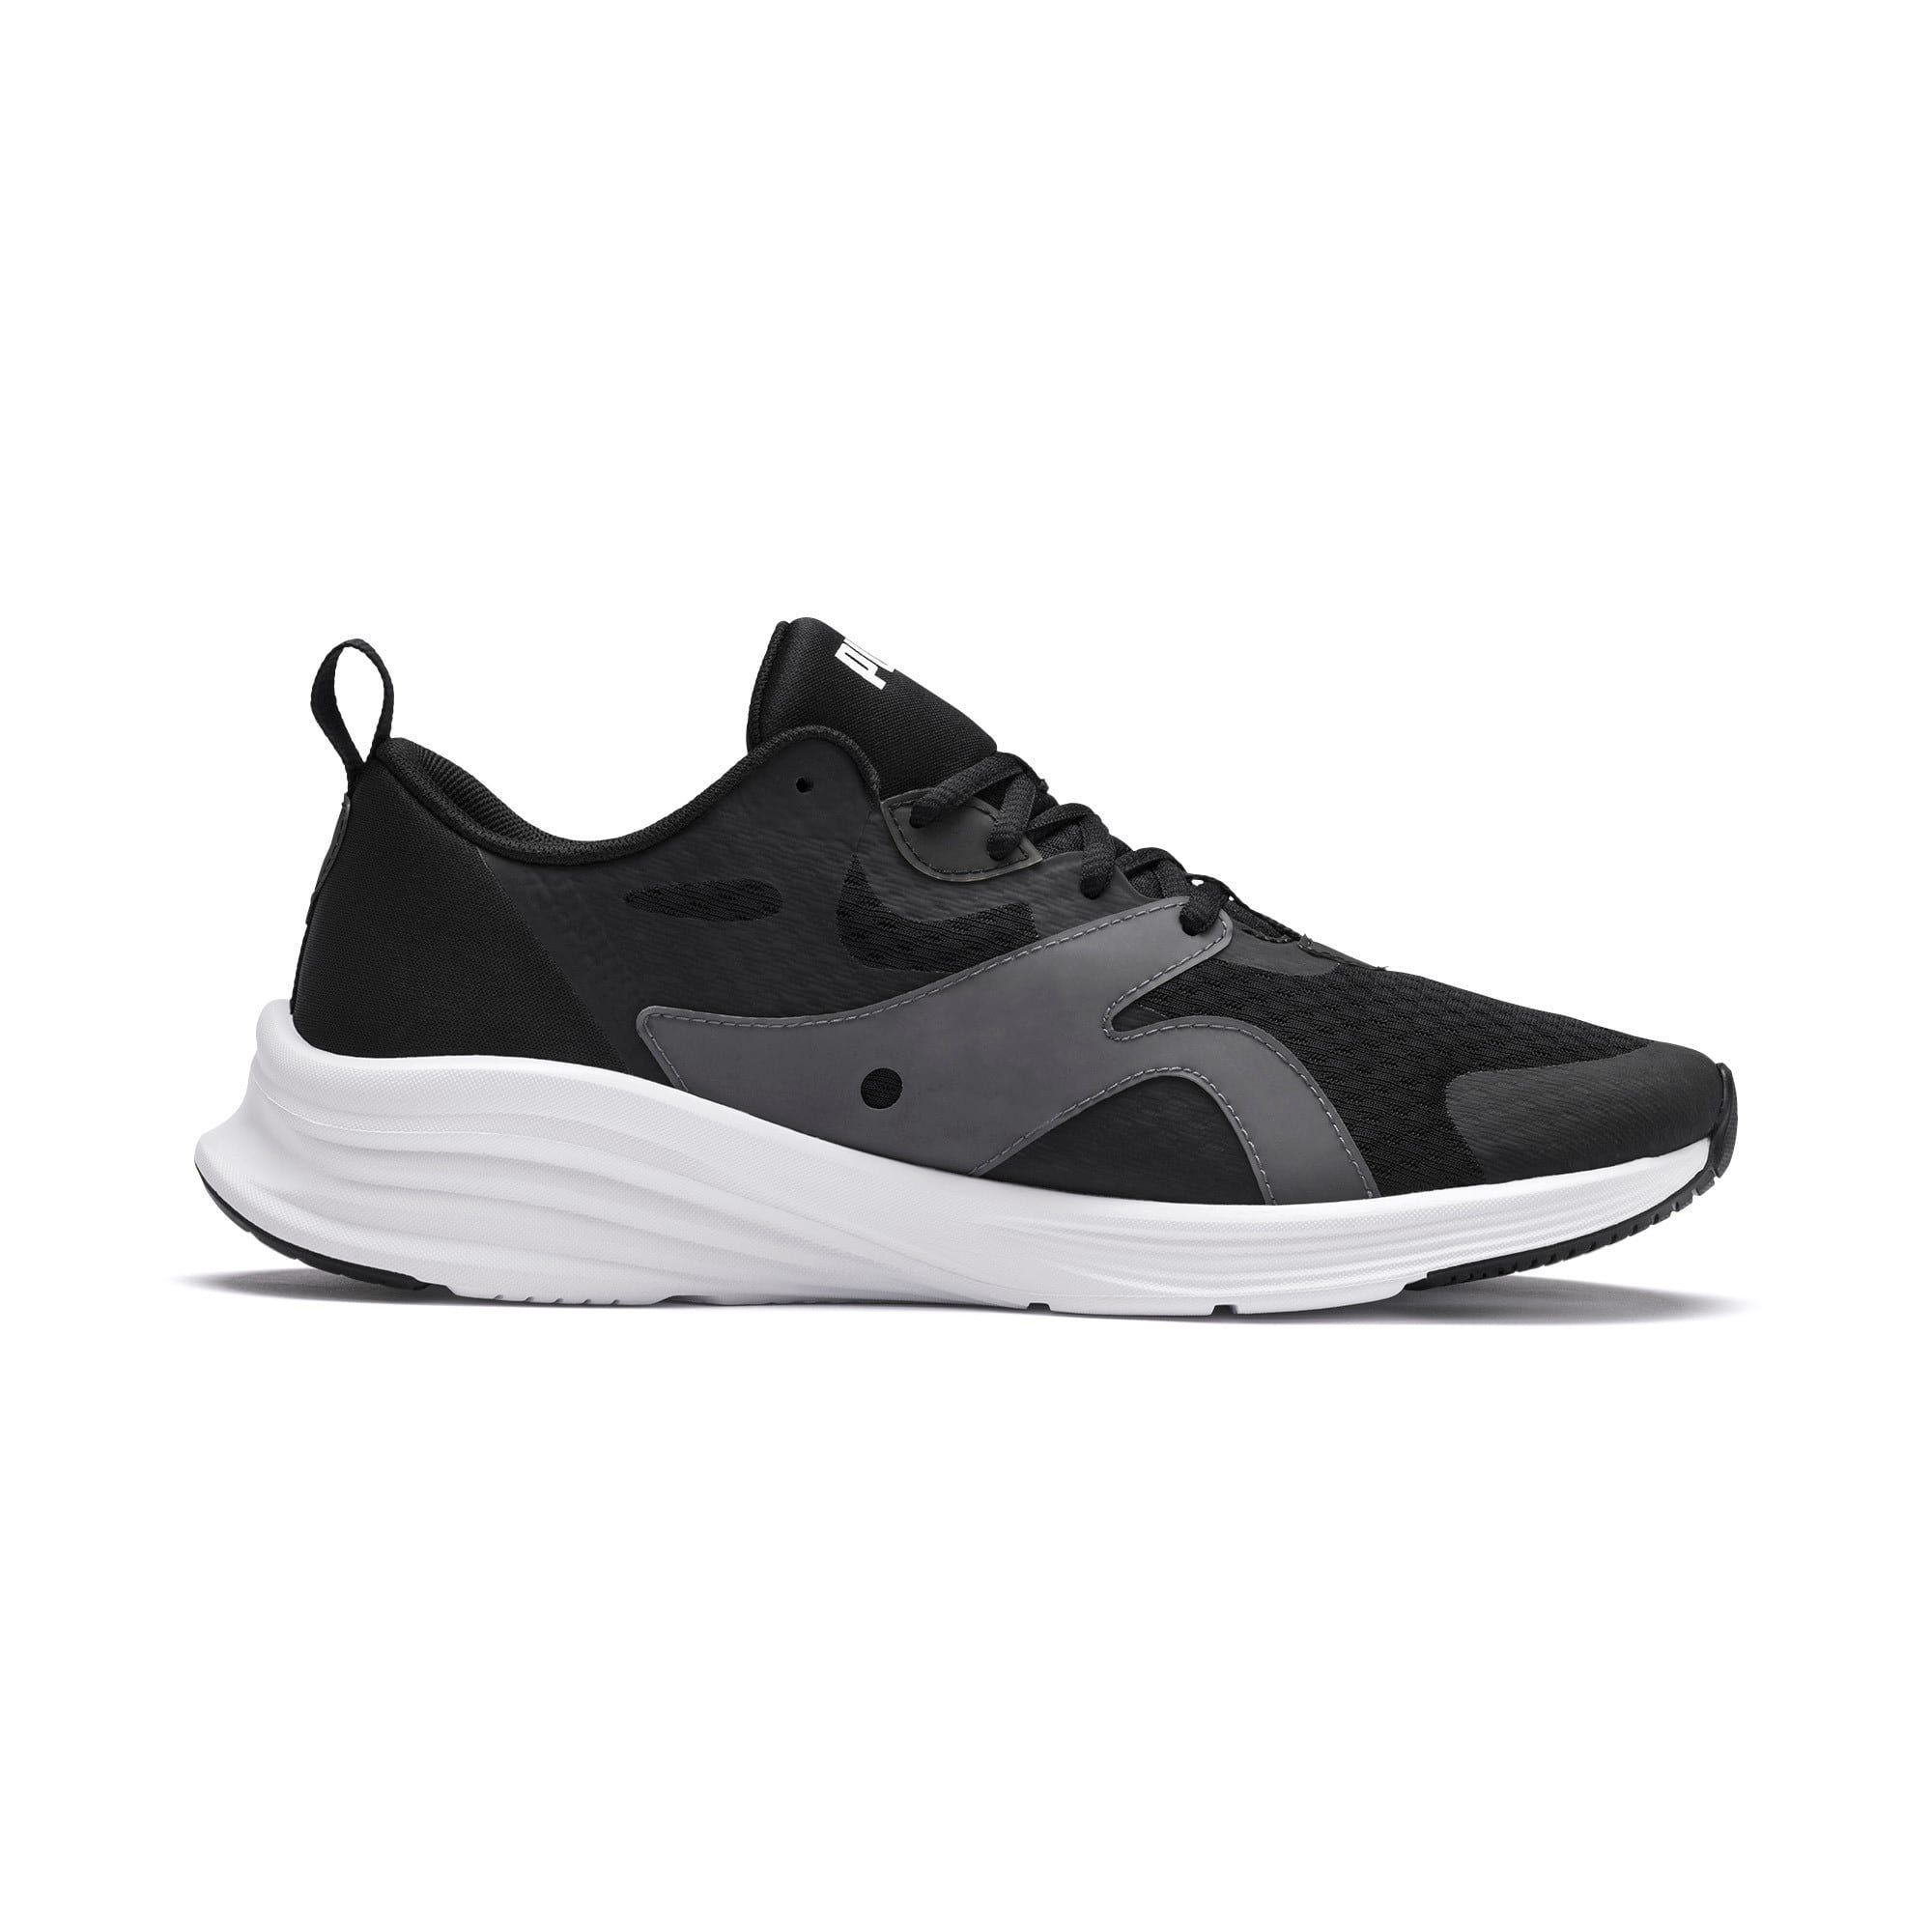 PUMA Hybrid Fuego Men's Running Shoes in Black/White size 10.5 #stylishmen